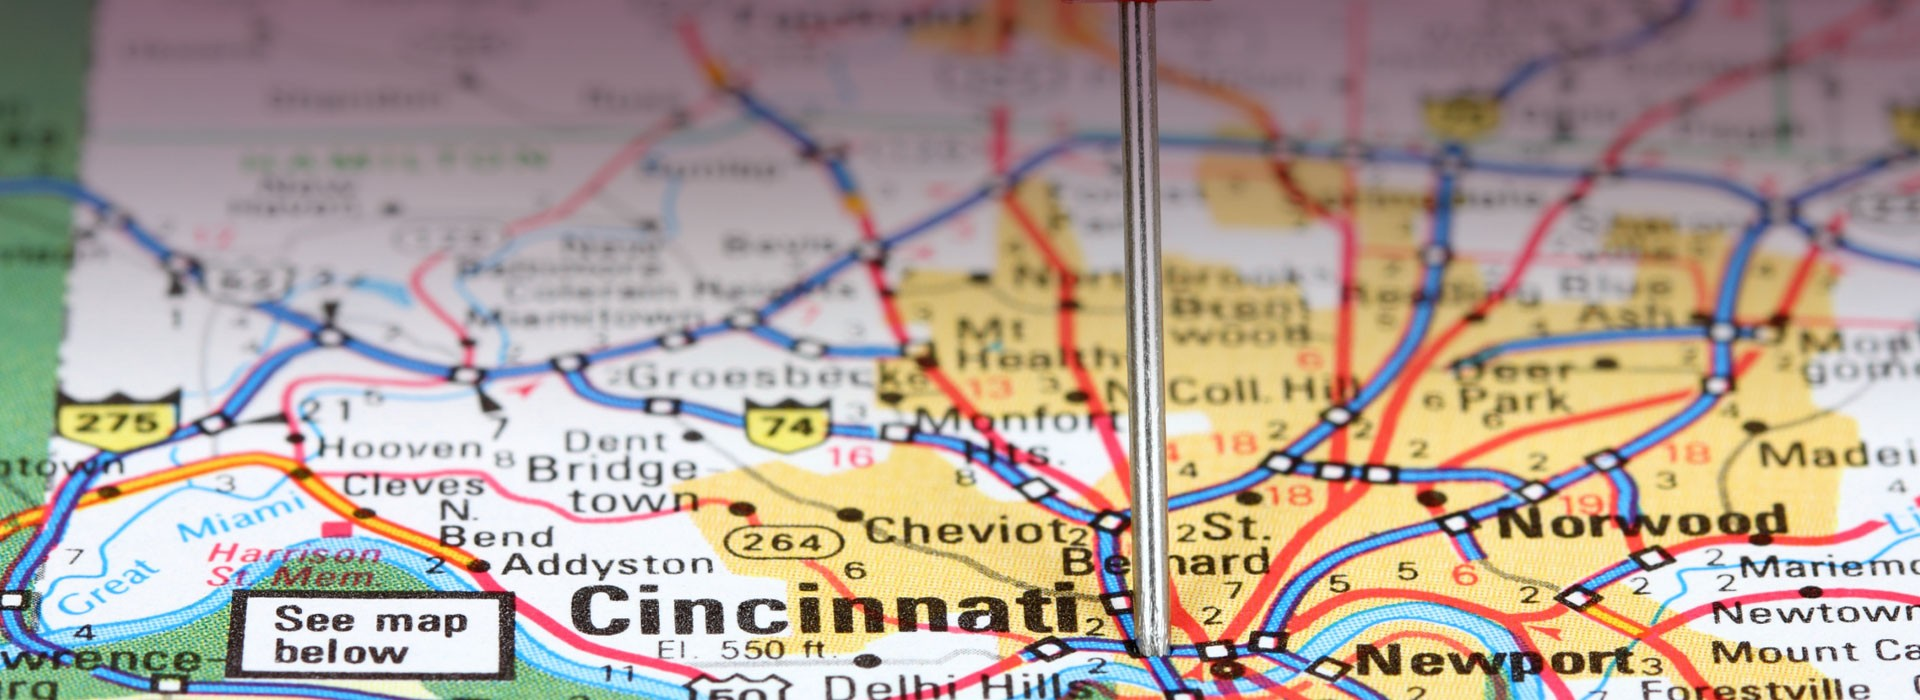 ms-headers-cinci-map